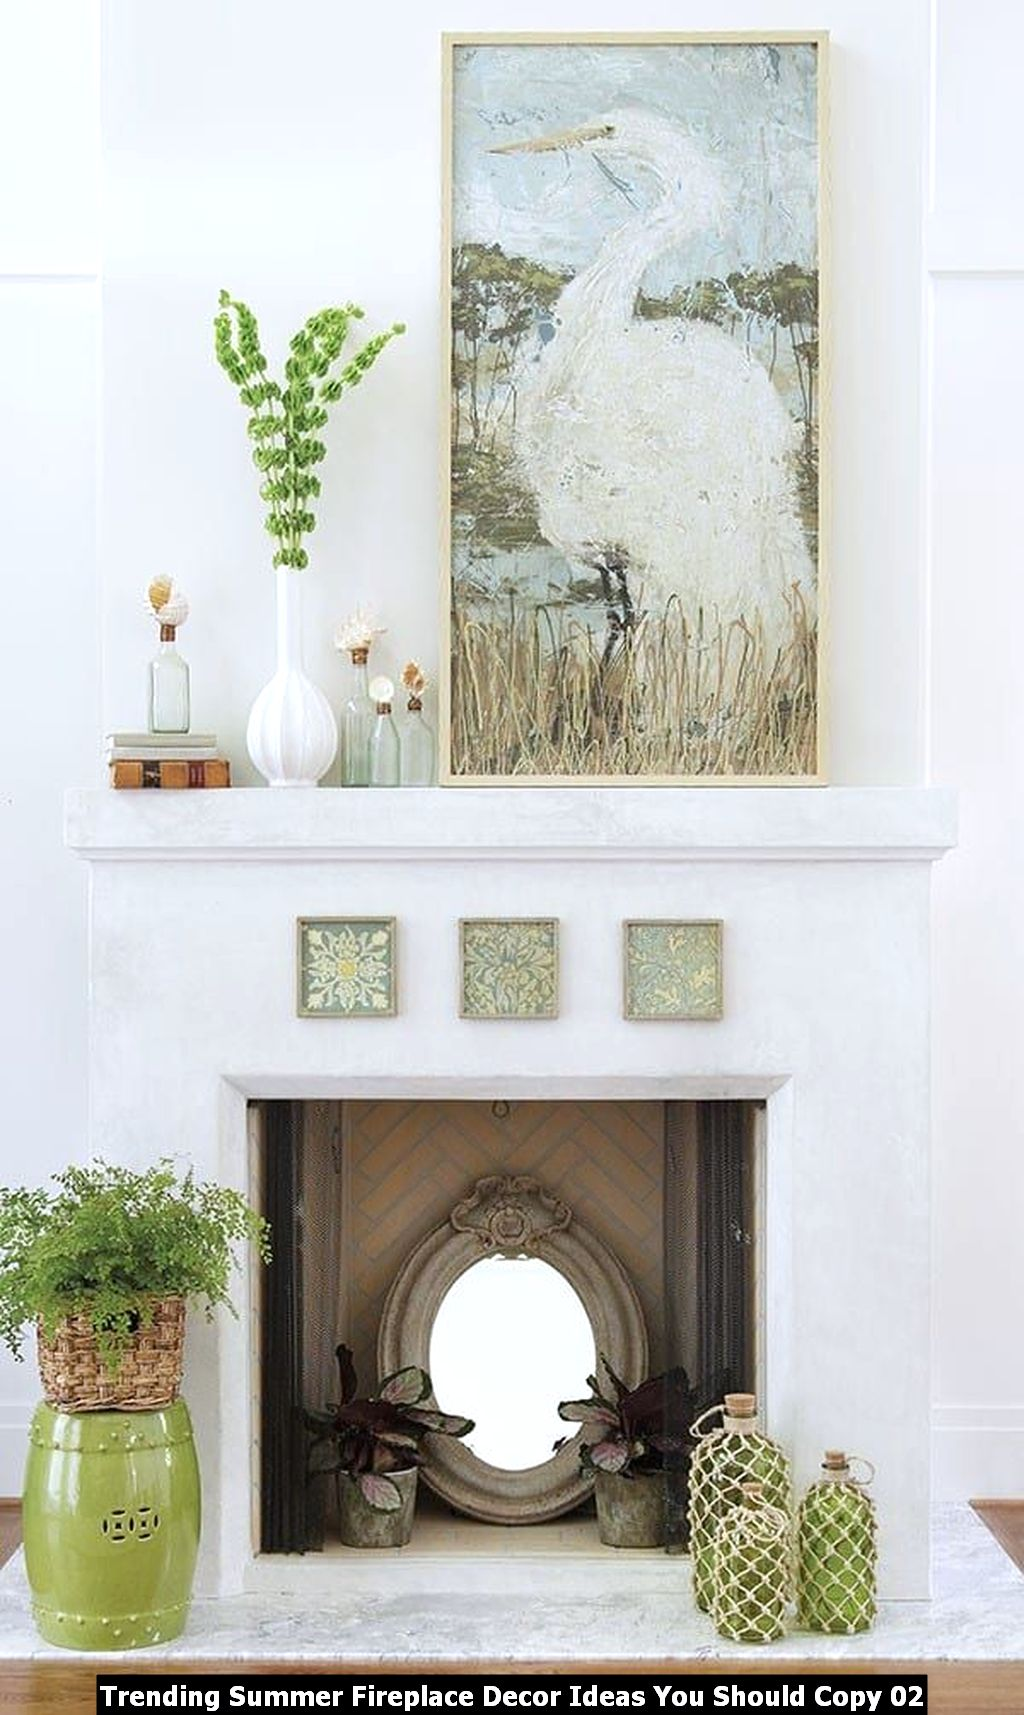 Trending Summer Fireplace Decor Ideas You Should Copy 02